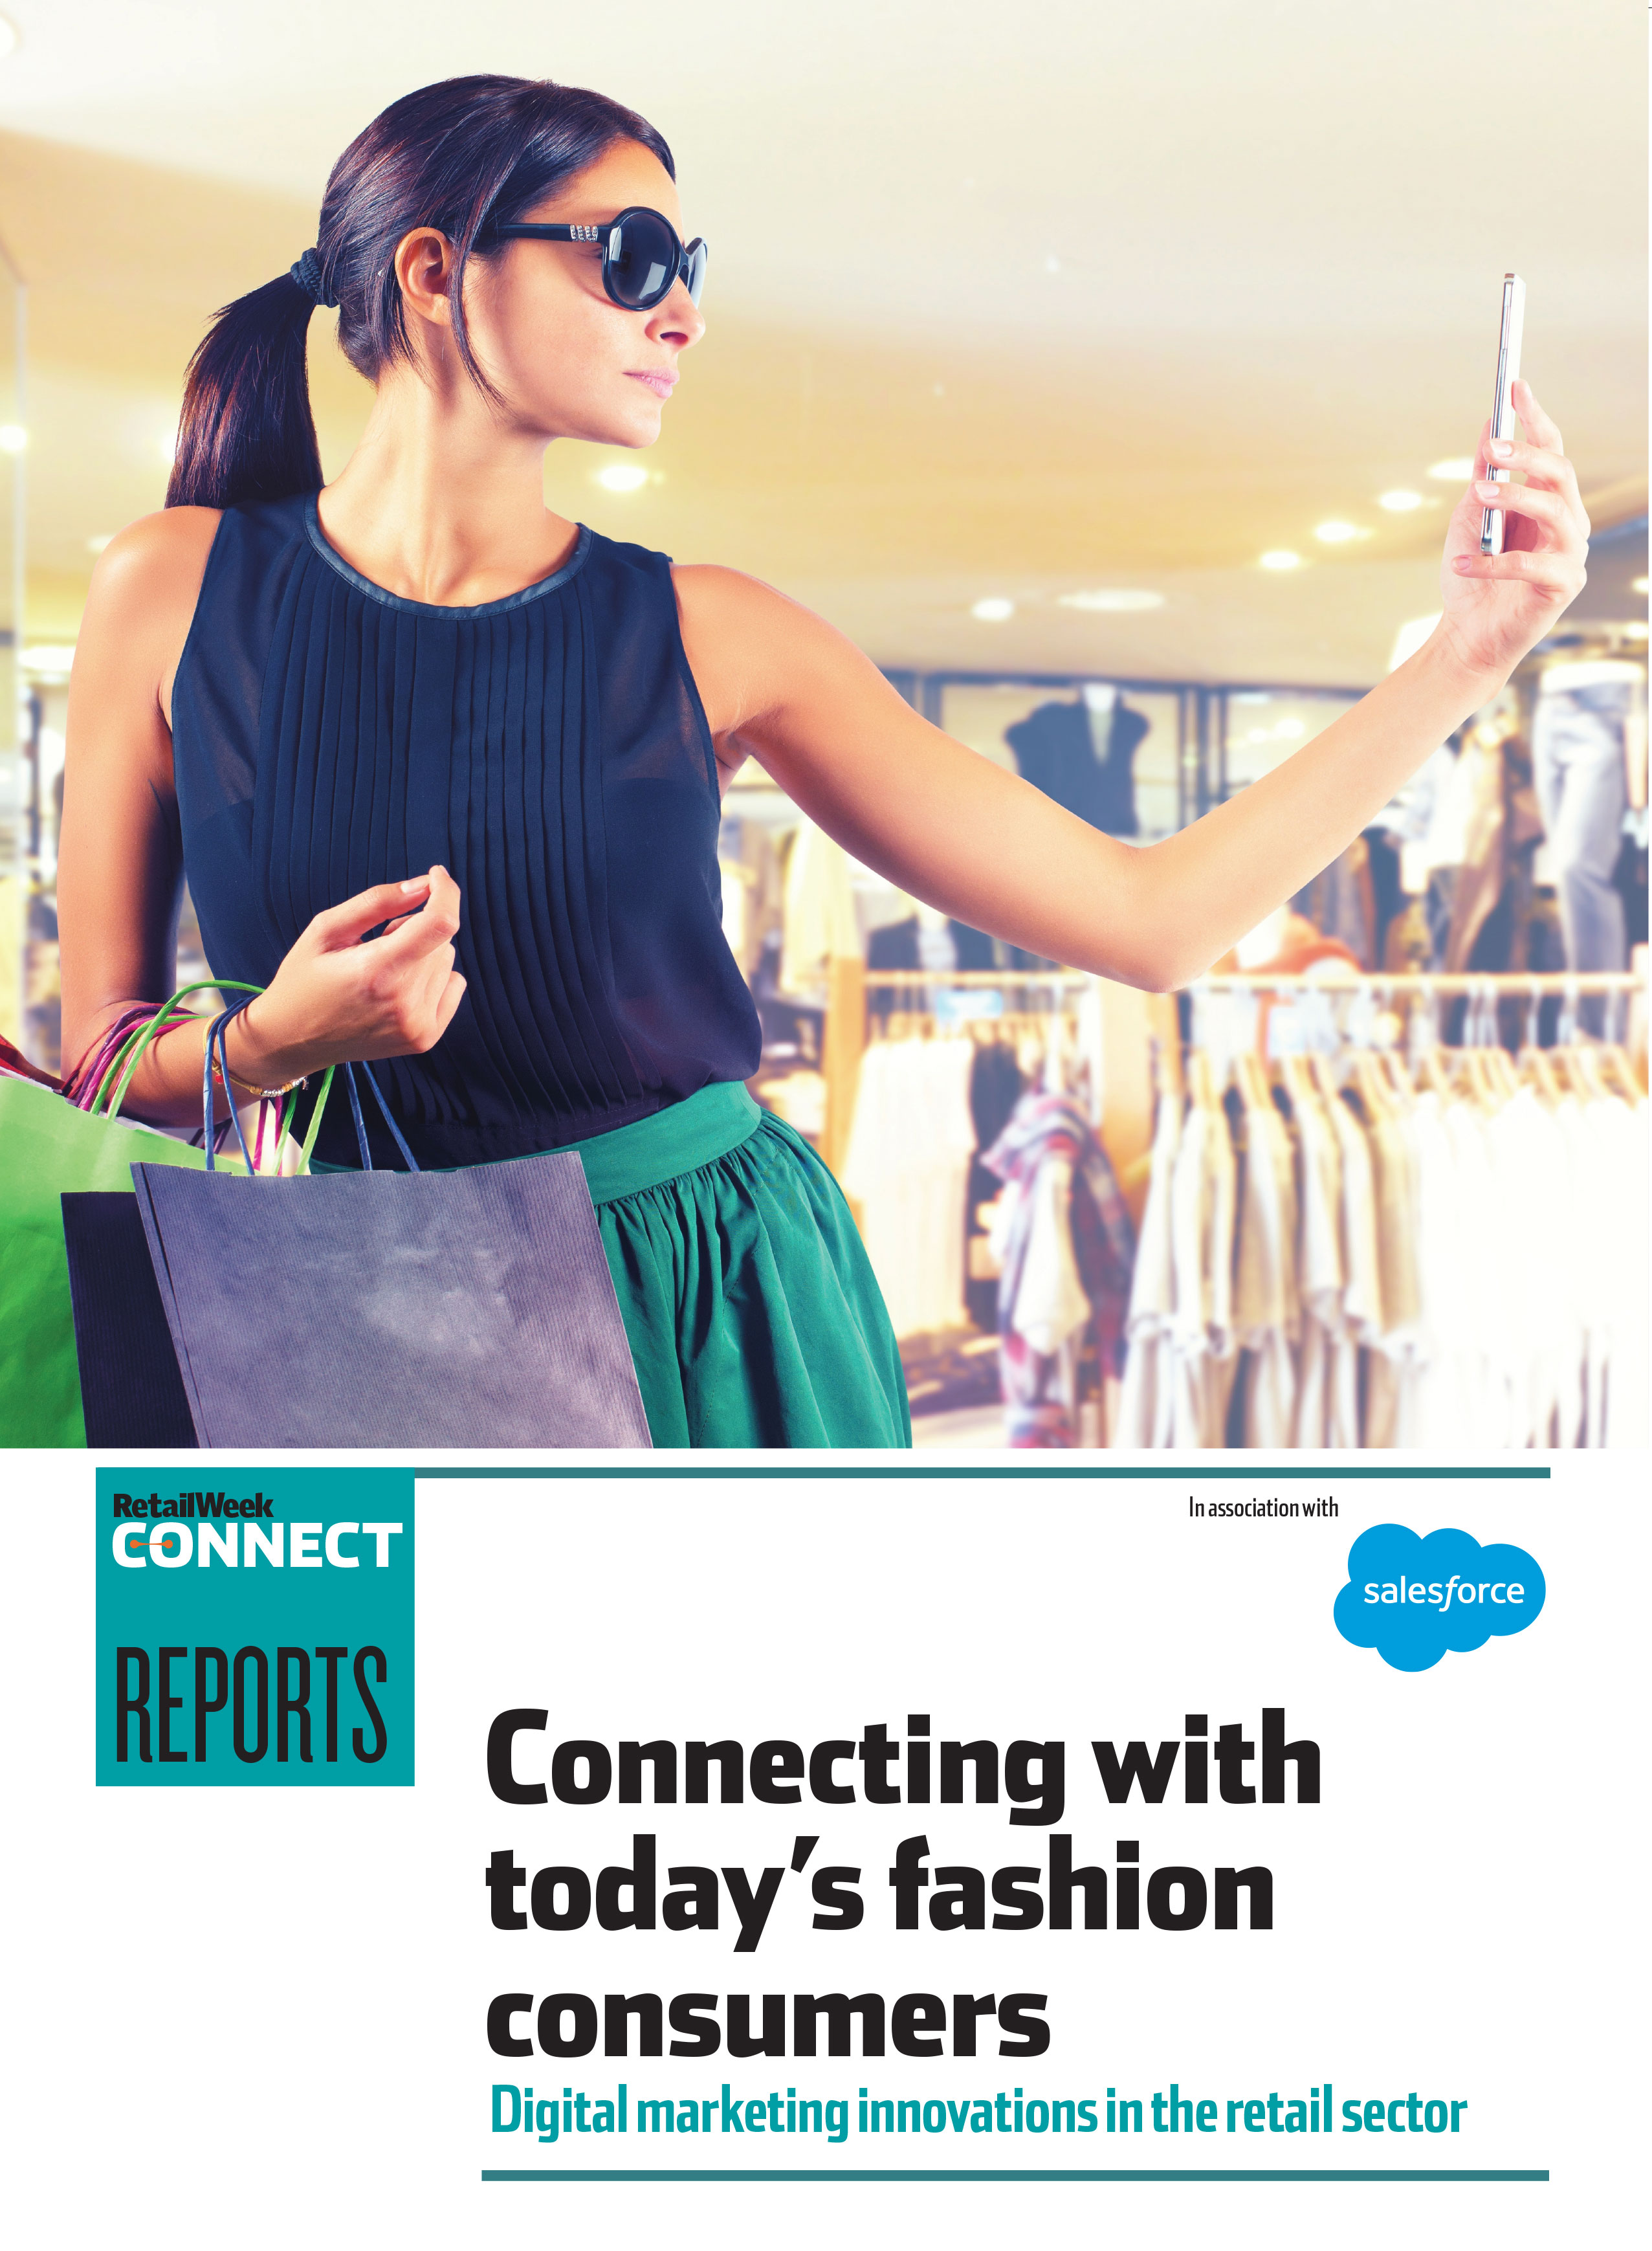 Salesforce Connecting with today's fashion consumers